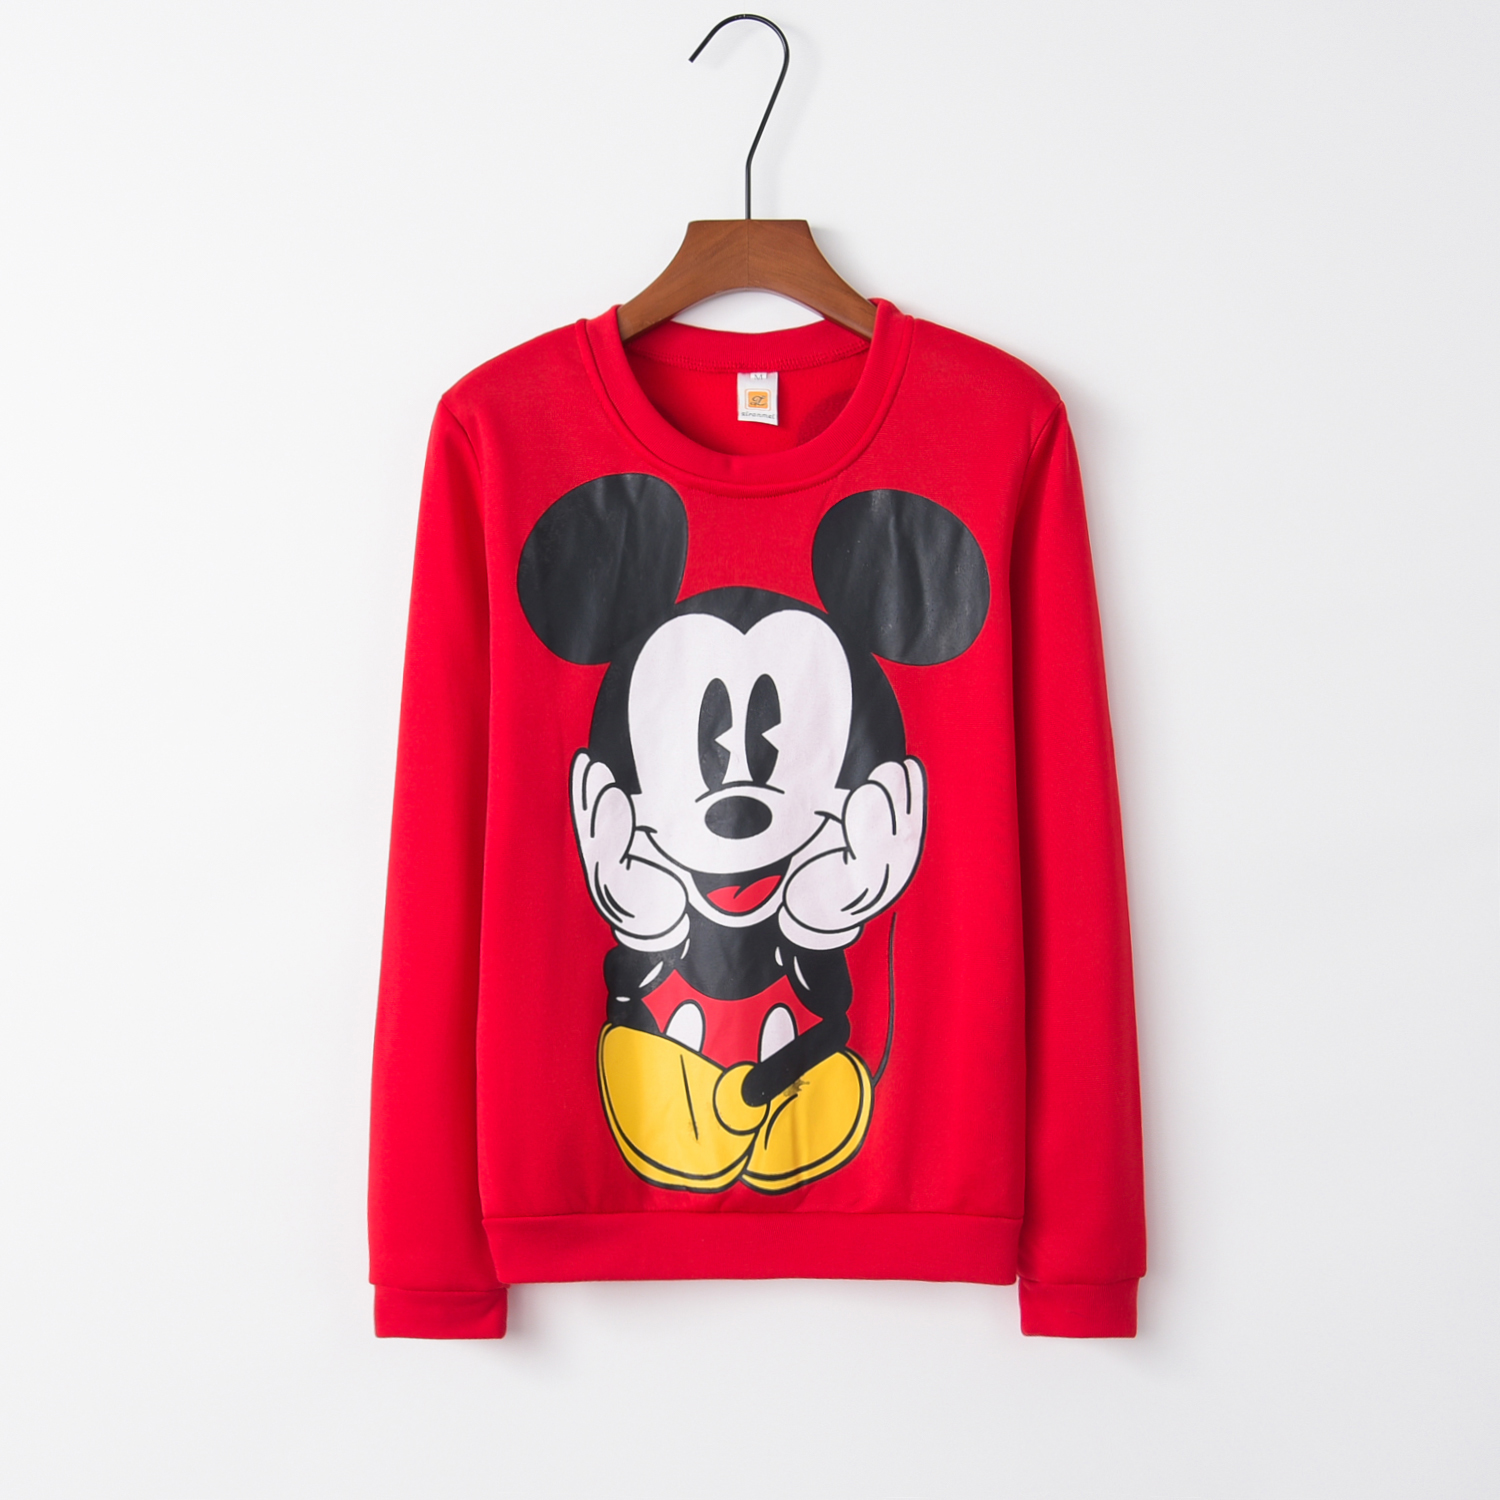 2016 Fashion New European Mickey Printing Sweatshirt Hoodies Long Sleeve Loose Women Crewneck Size S-XL Hot Sale 2016